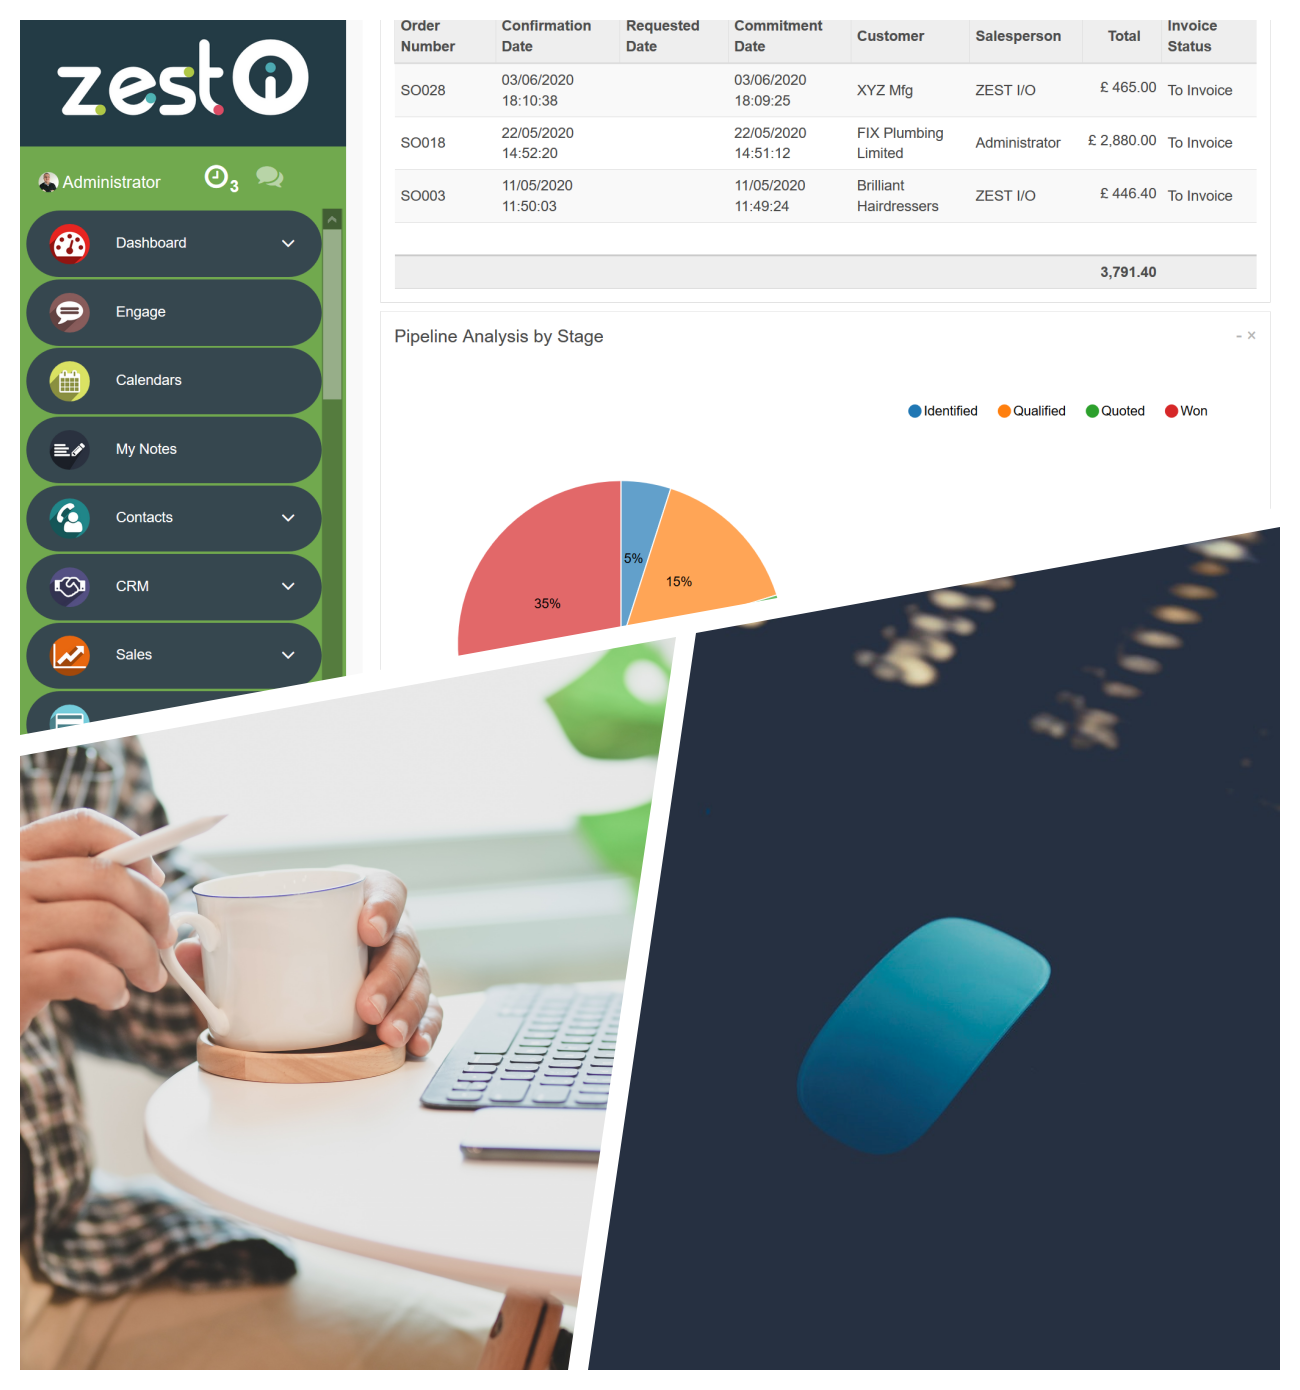 ZEST I-O Gives You Total Visibility Control Cloud Software Dashboard